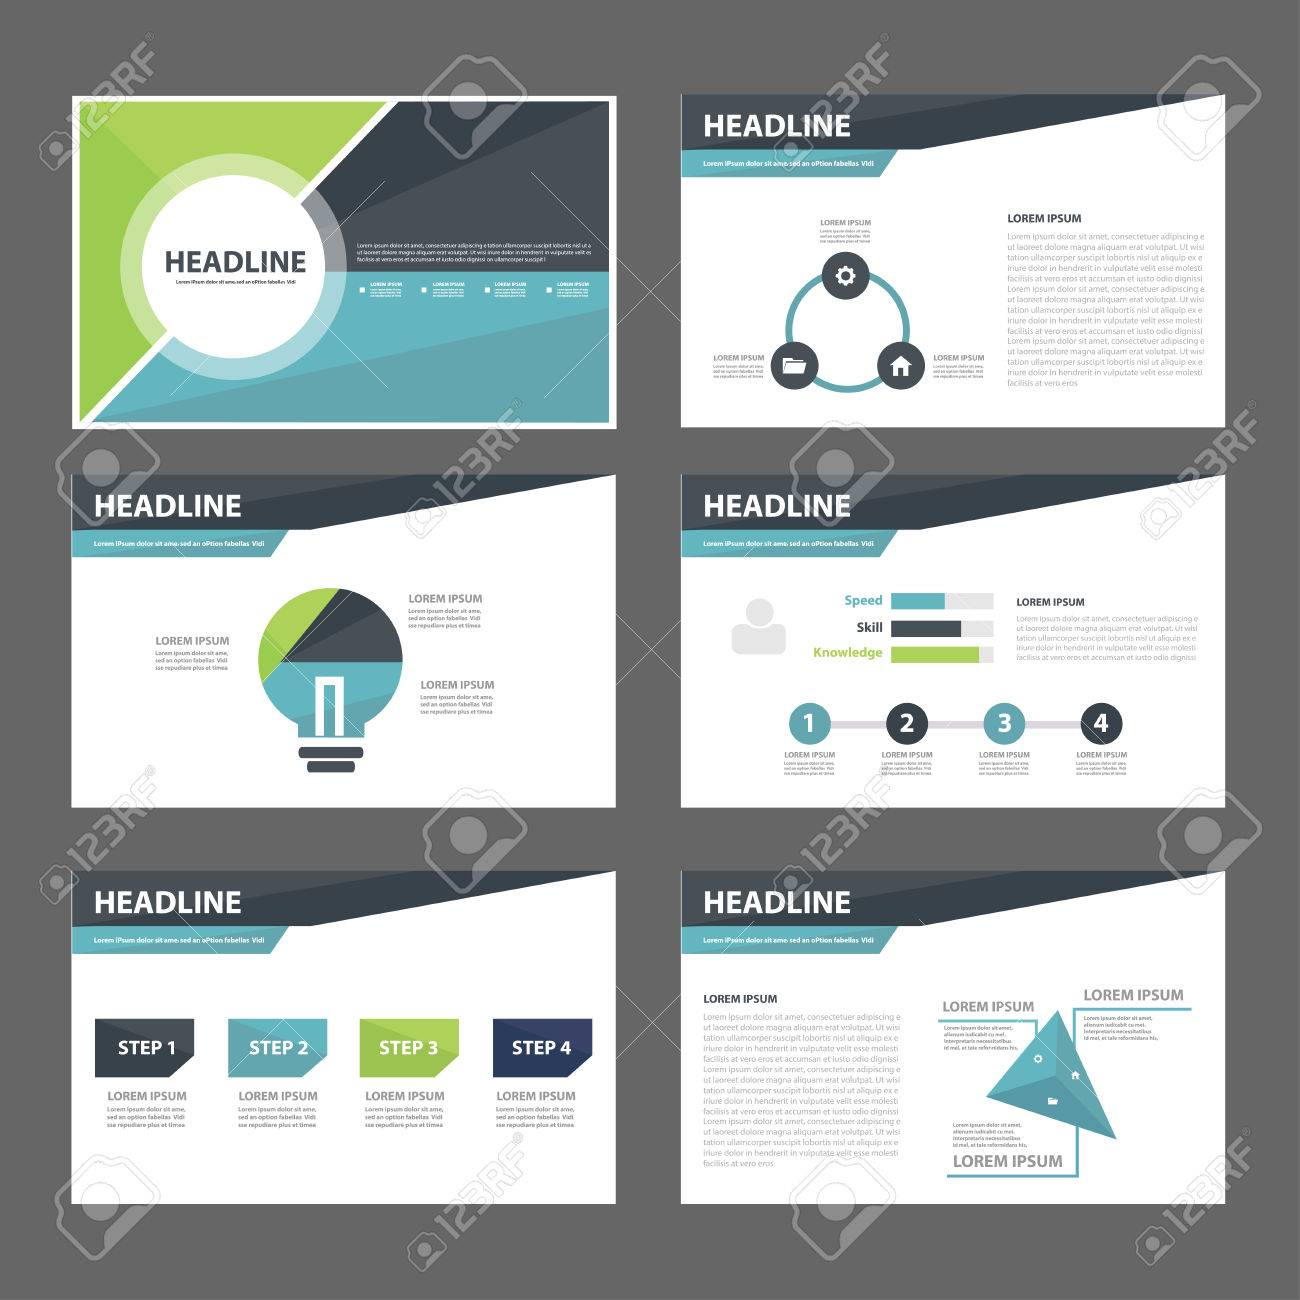 cover page stock photos images royalty cover page images and cover page blue and green infographic element for presentation brochure flyer leaflet flat design